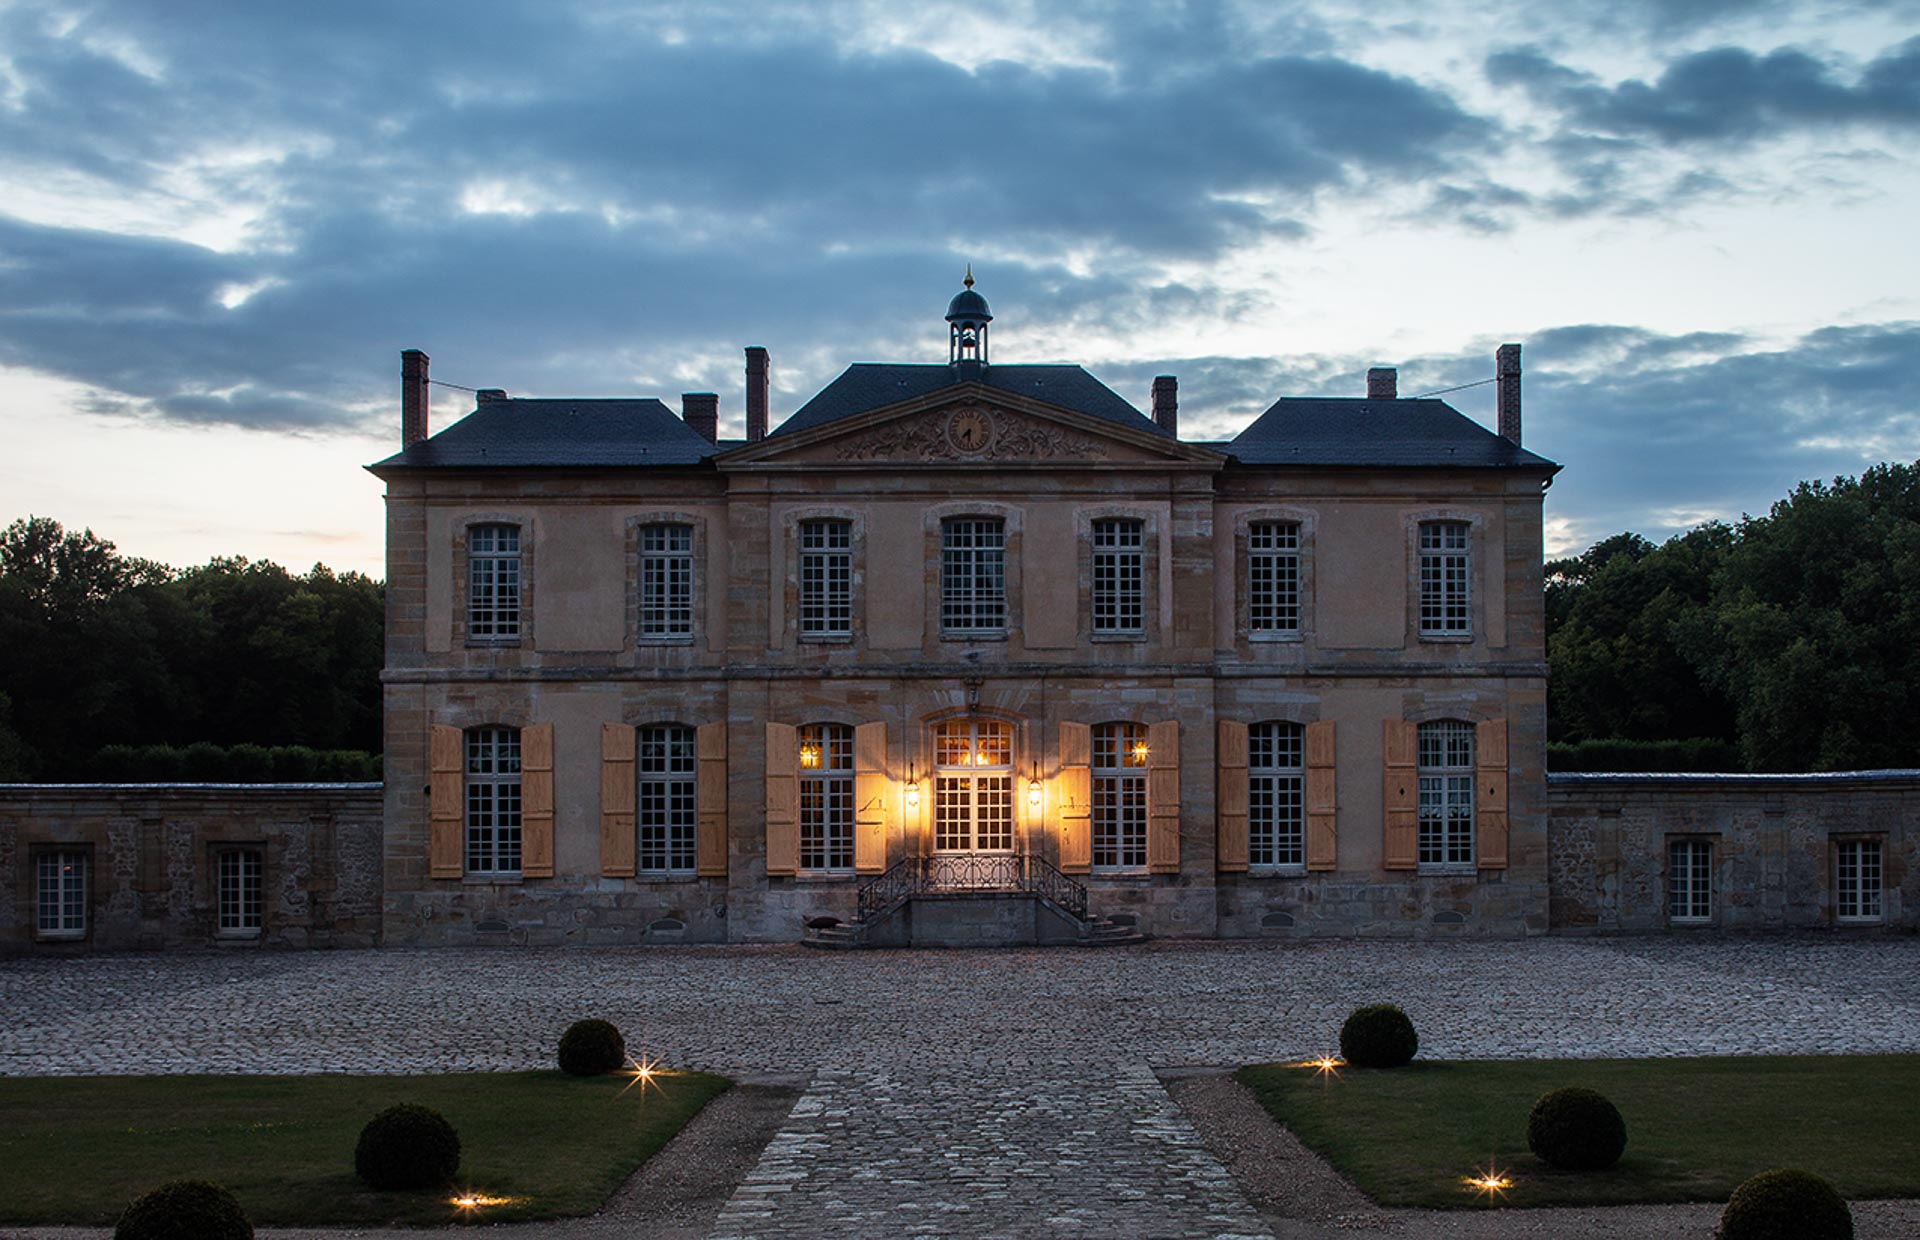 Historical Sumptuous Chateau in France near Paris perfect venue for events including luxury weddings seminars private dinners 3